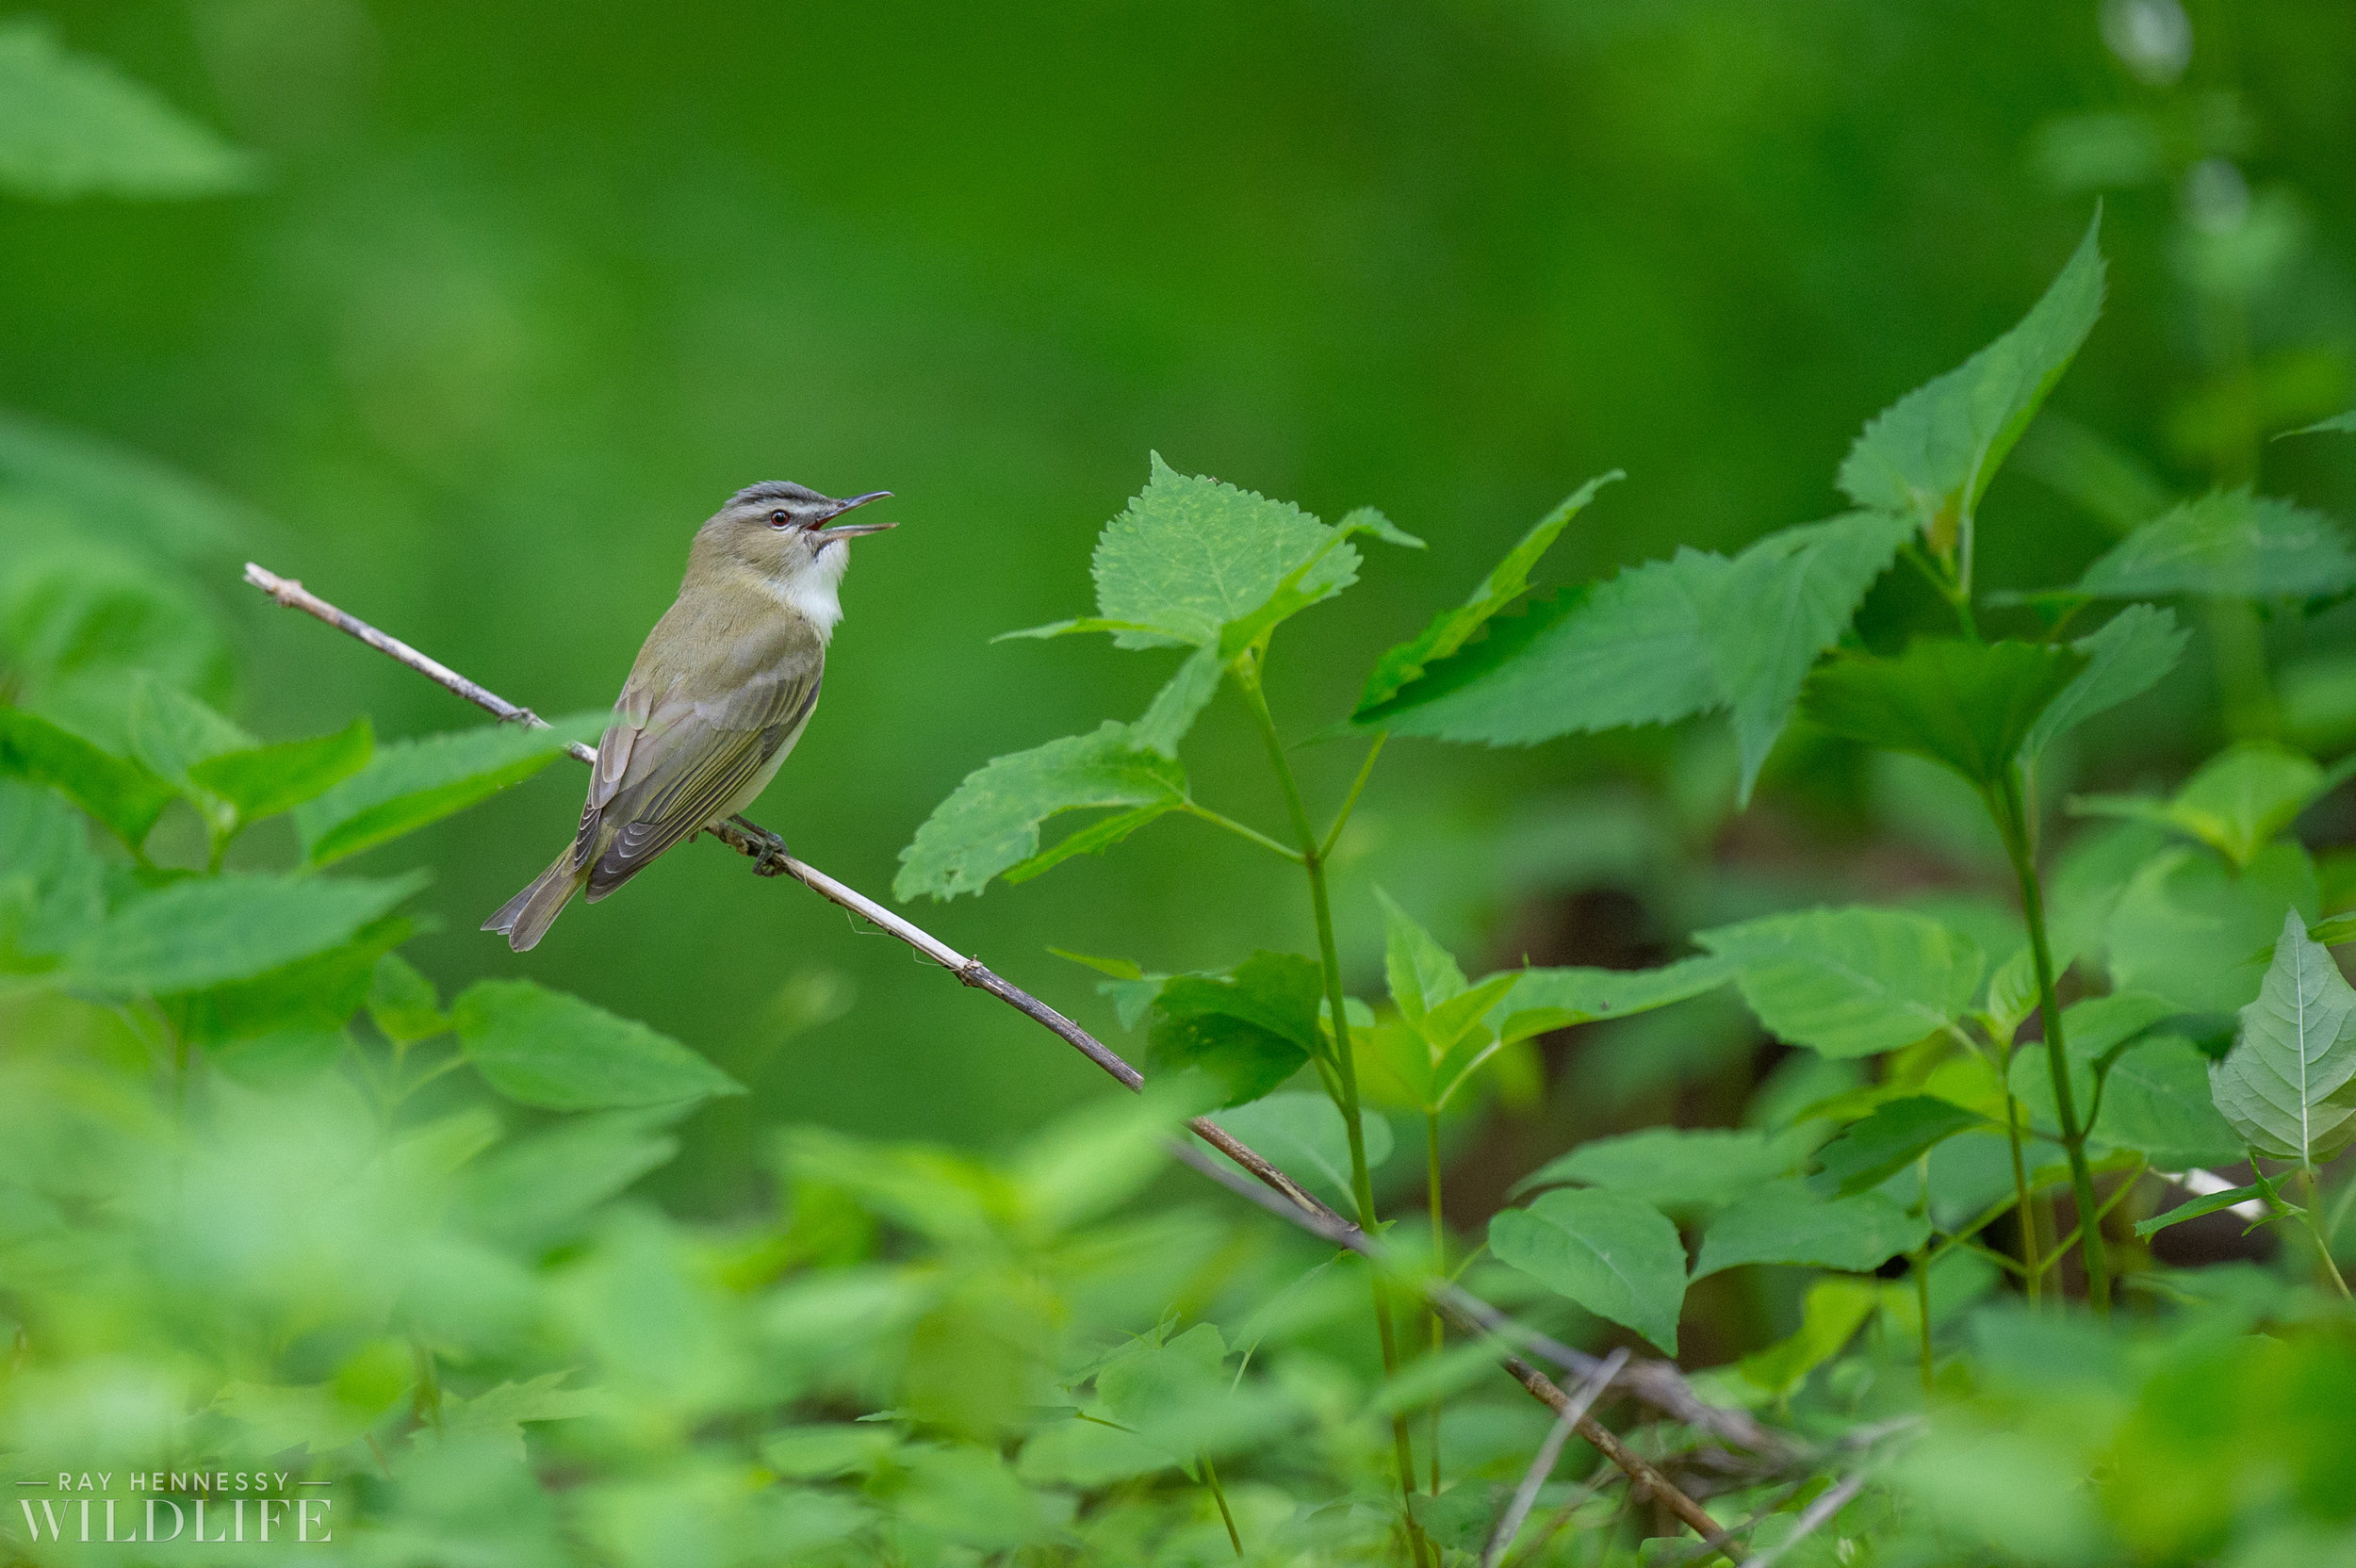 004_nothern-new-jersey-warblers.jpg